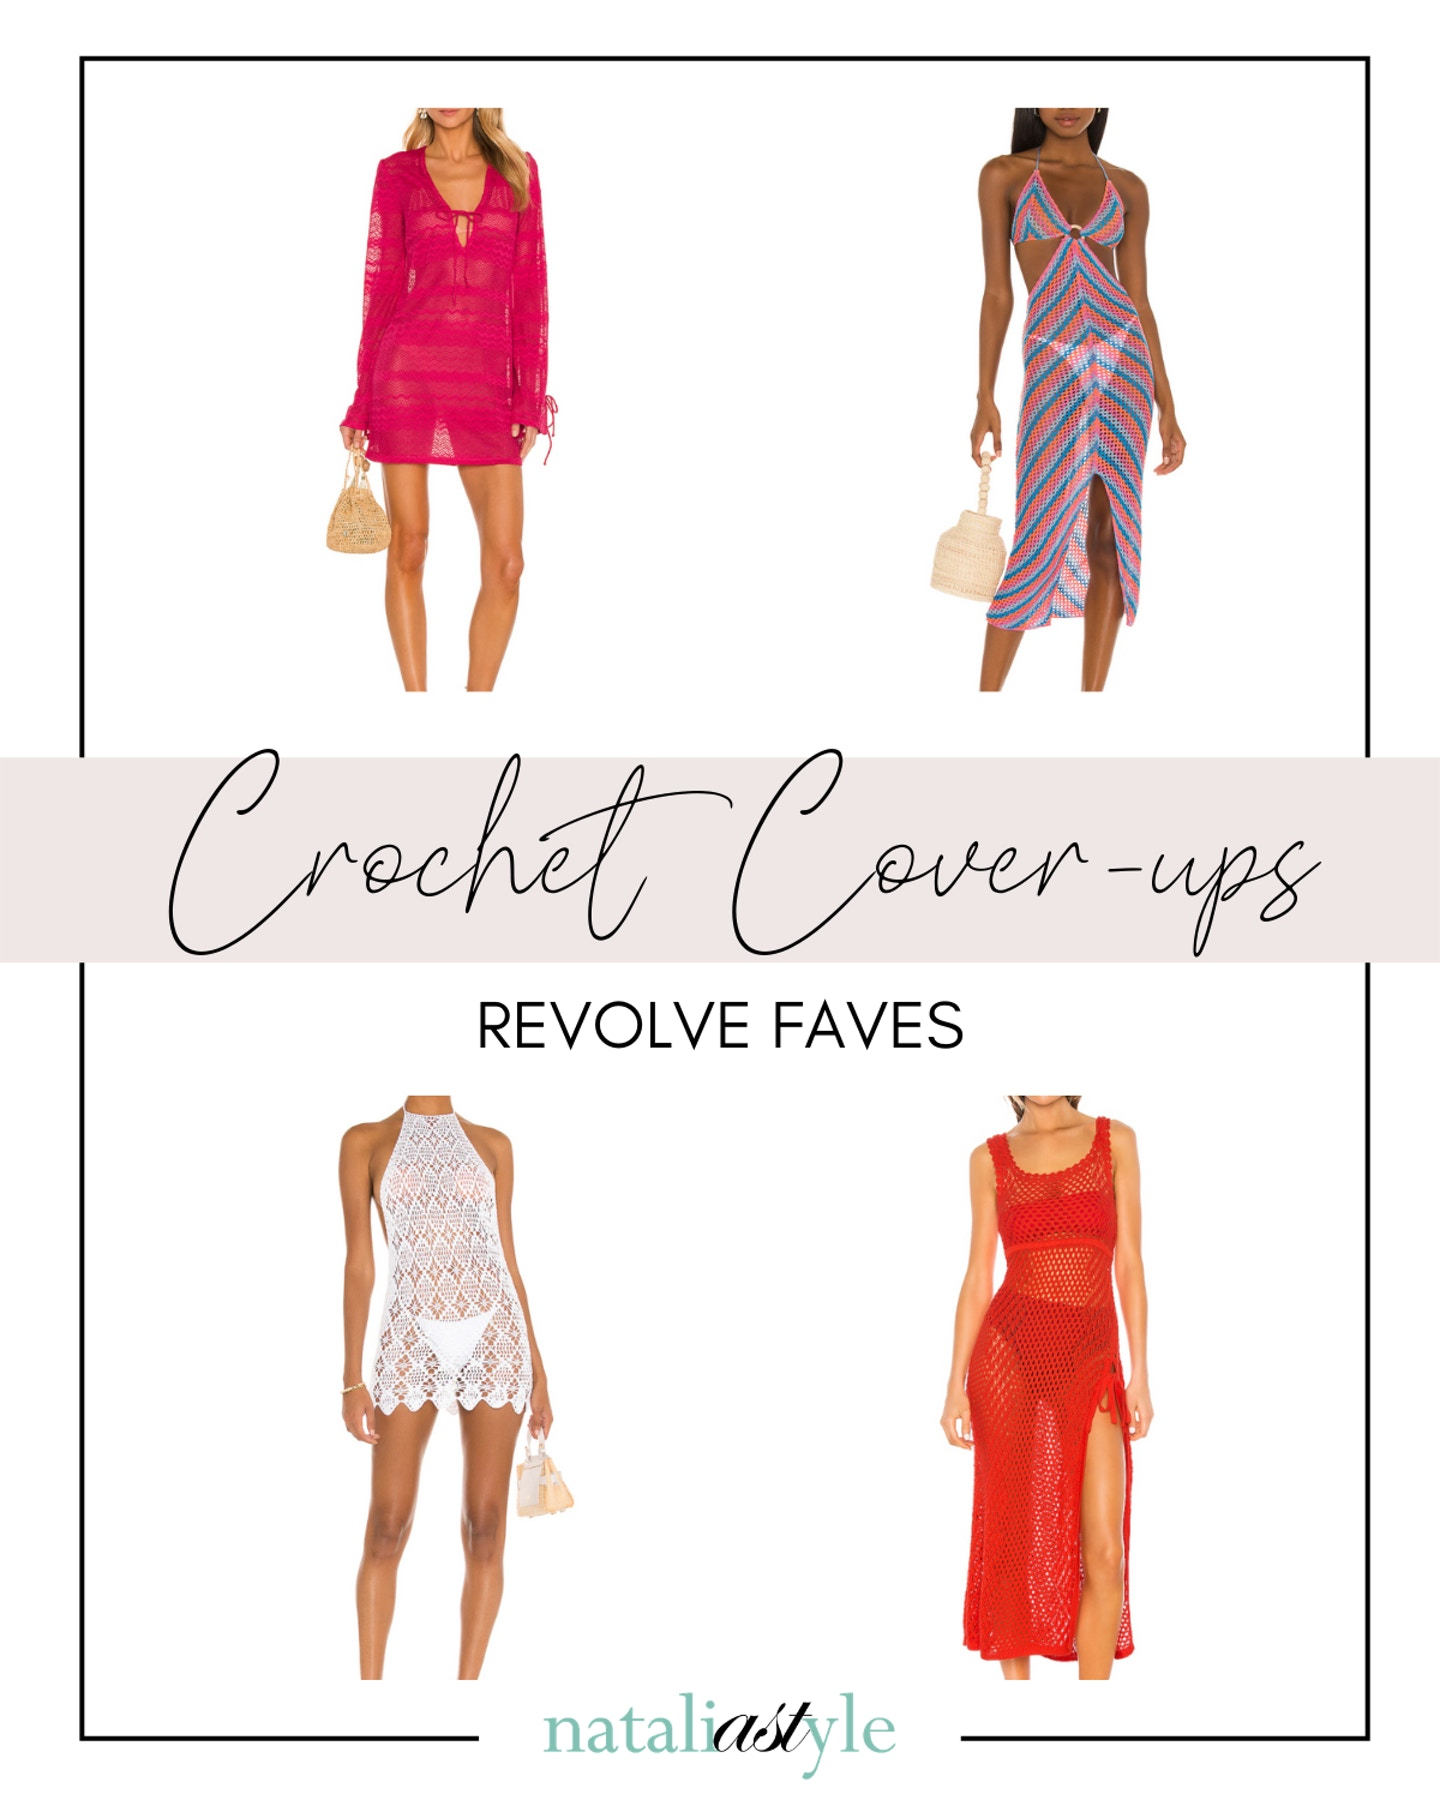 A crochet cover-up is a must for Summer 2021. These crochet swimsuit coverups are perfect for the beach or poolside, featuring fun colours and eye-catching designs.